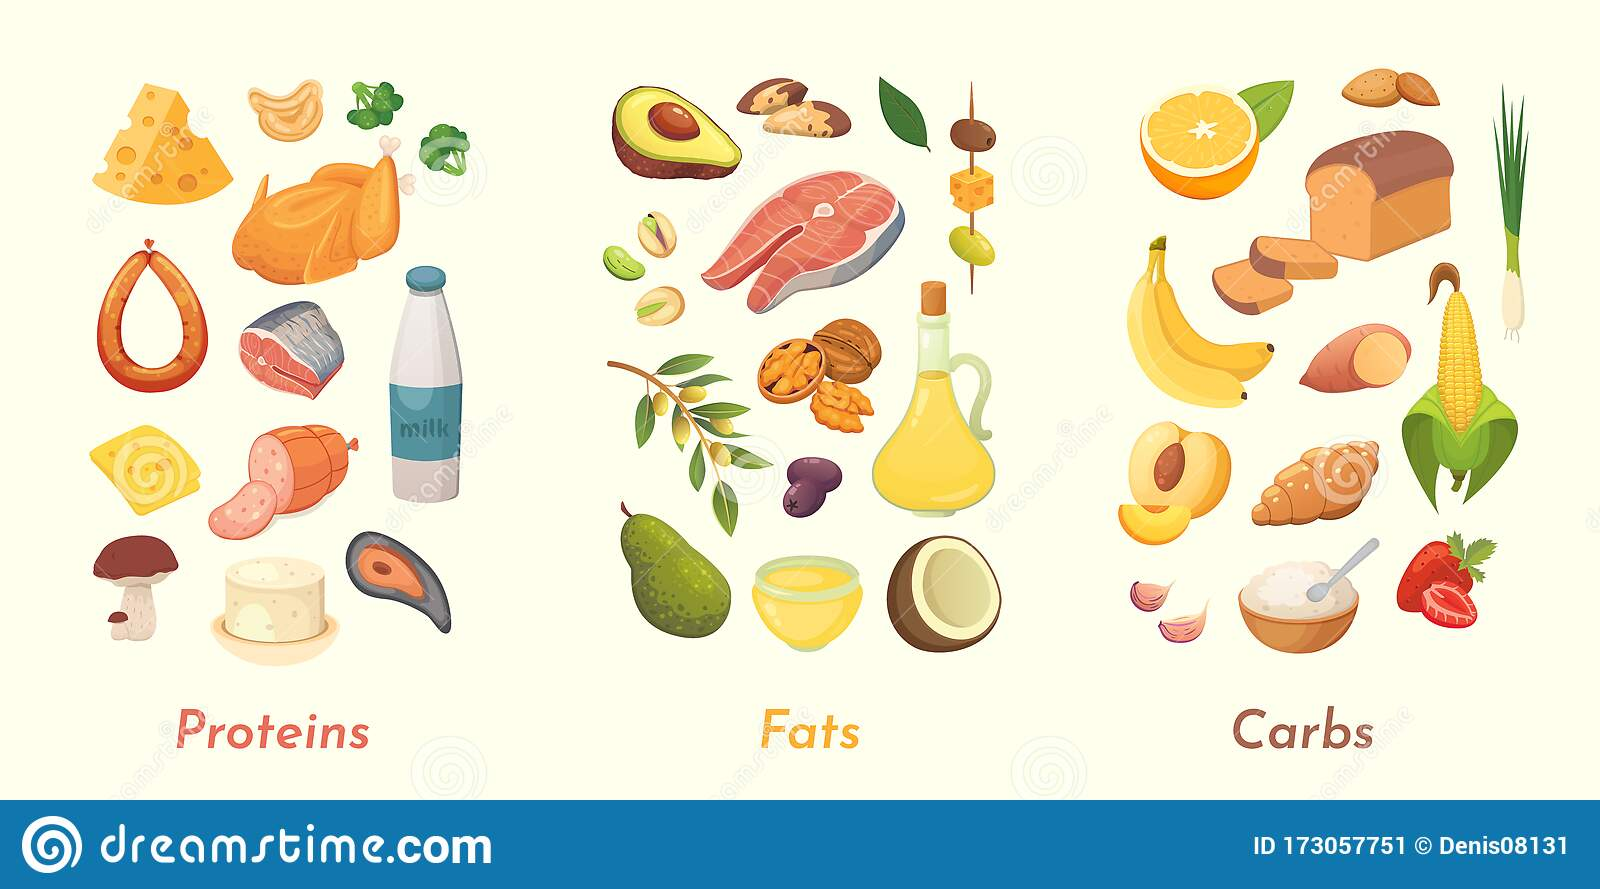 Carbohydrates Proteins Fat Scenes